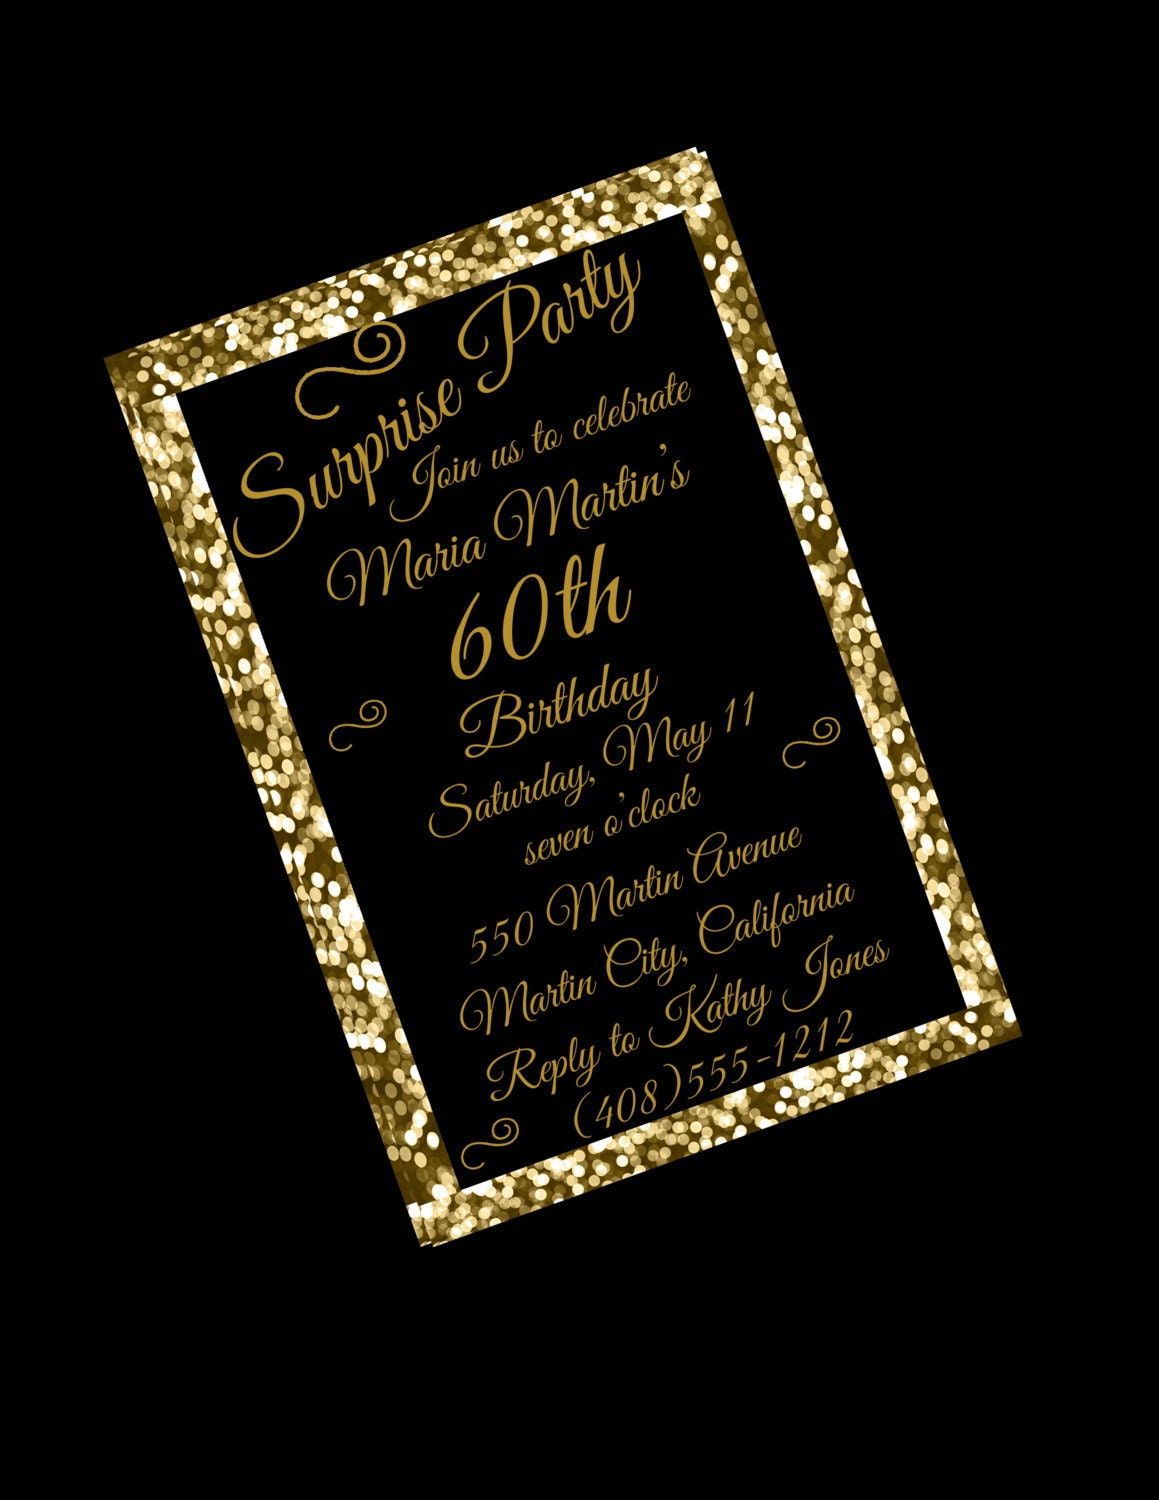 60th birthday invites - Etame.mibawa.co